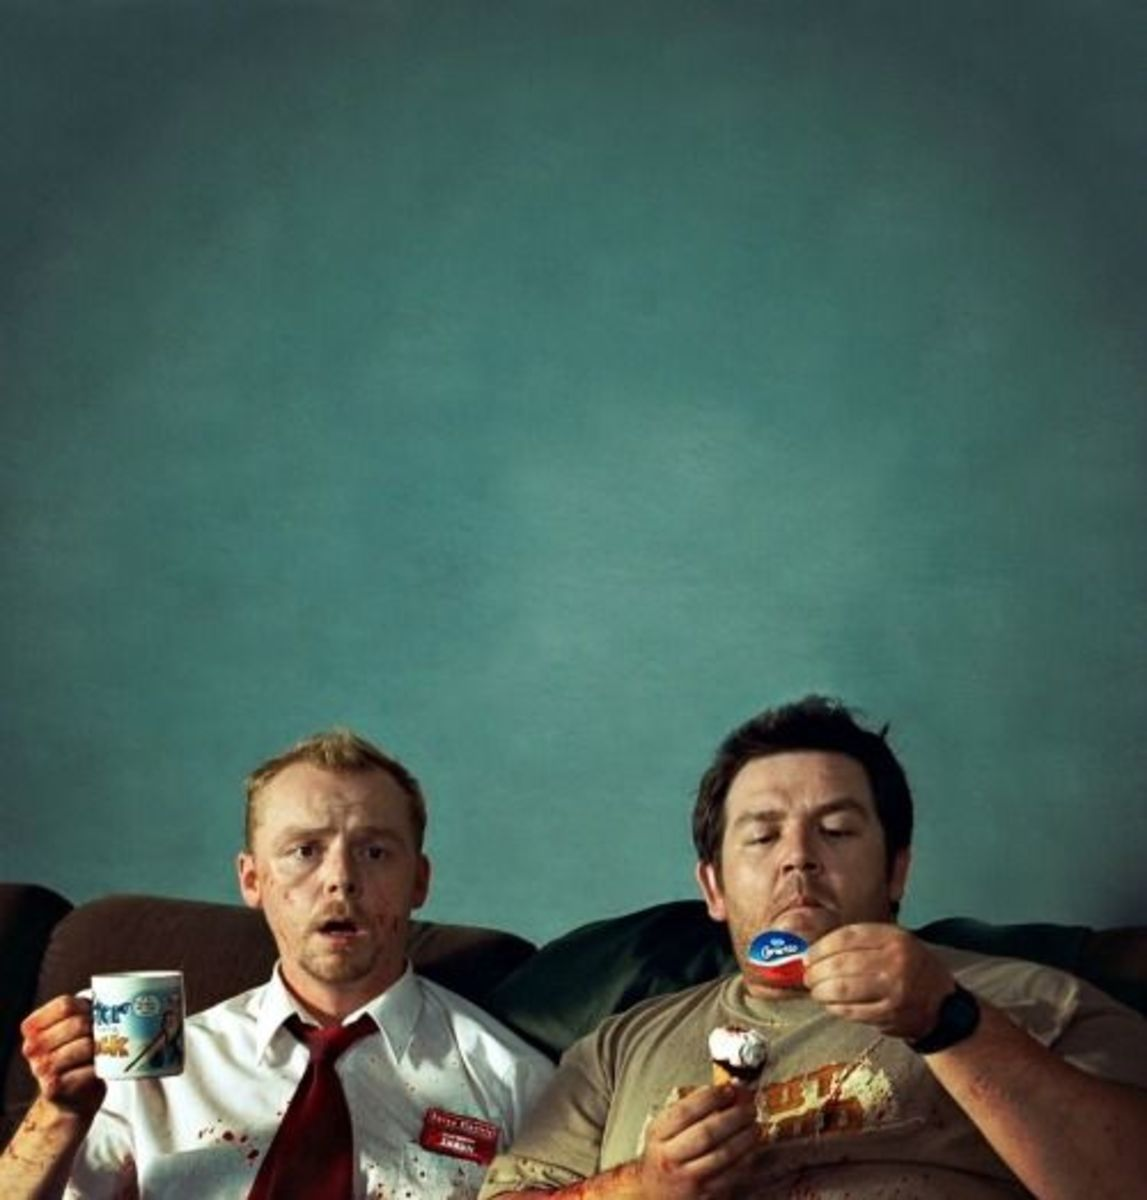 Shot From Shaun Of The Dead